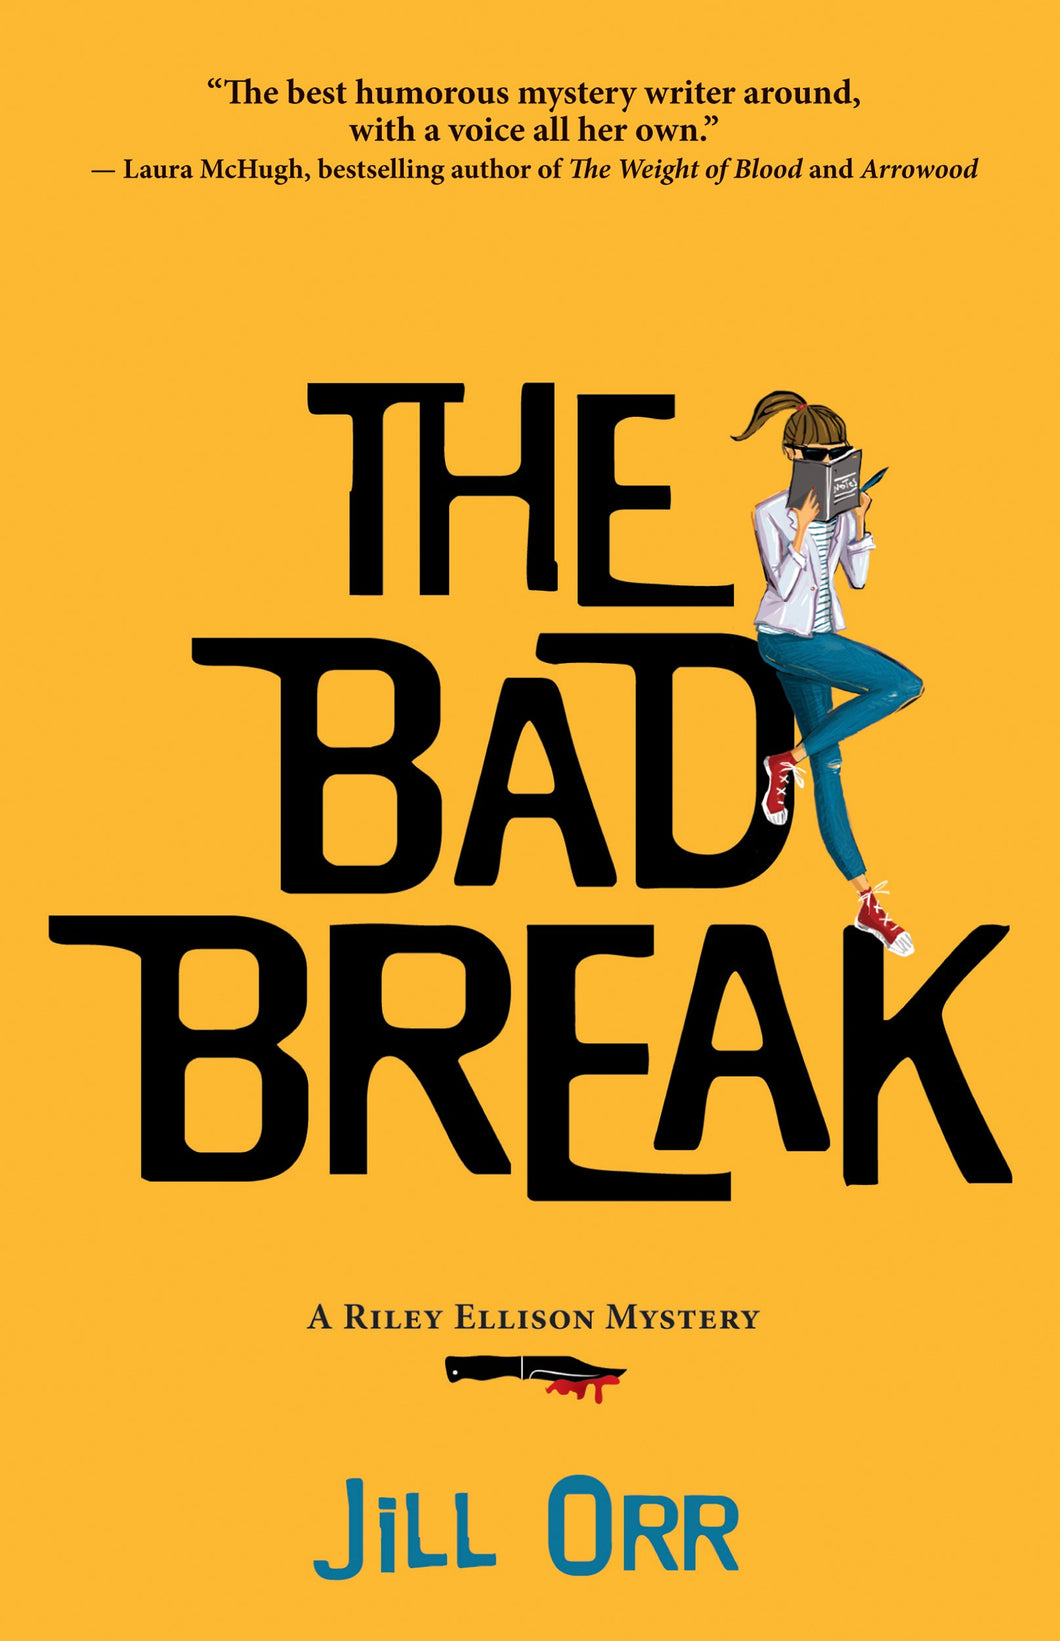 The Bad Break (Riley Ellison Mysteries Book #2) by Jill Orr